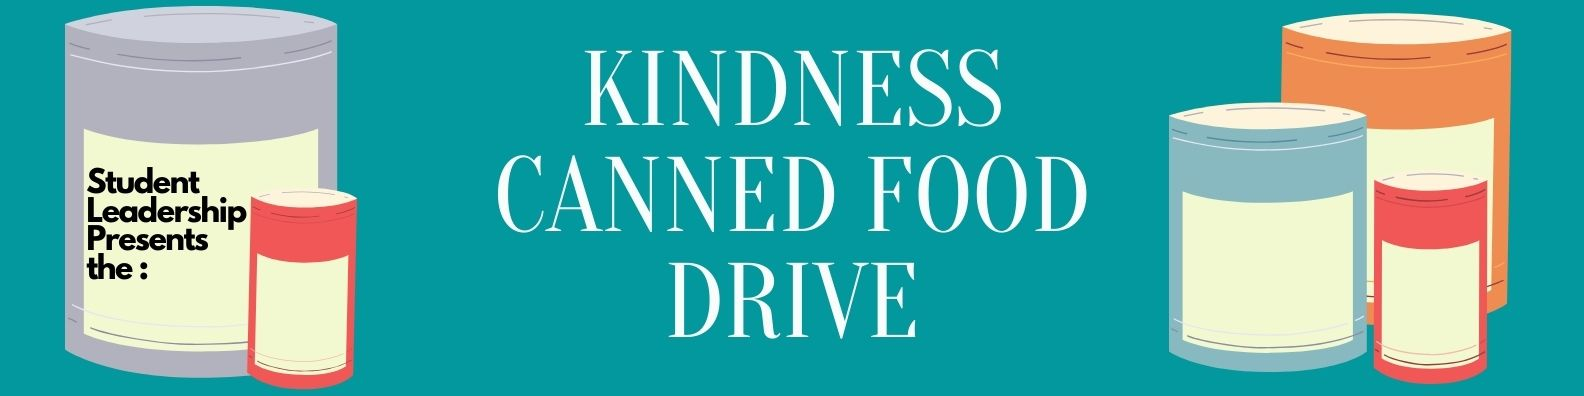 Kindness Canned Food Drive